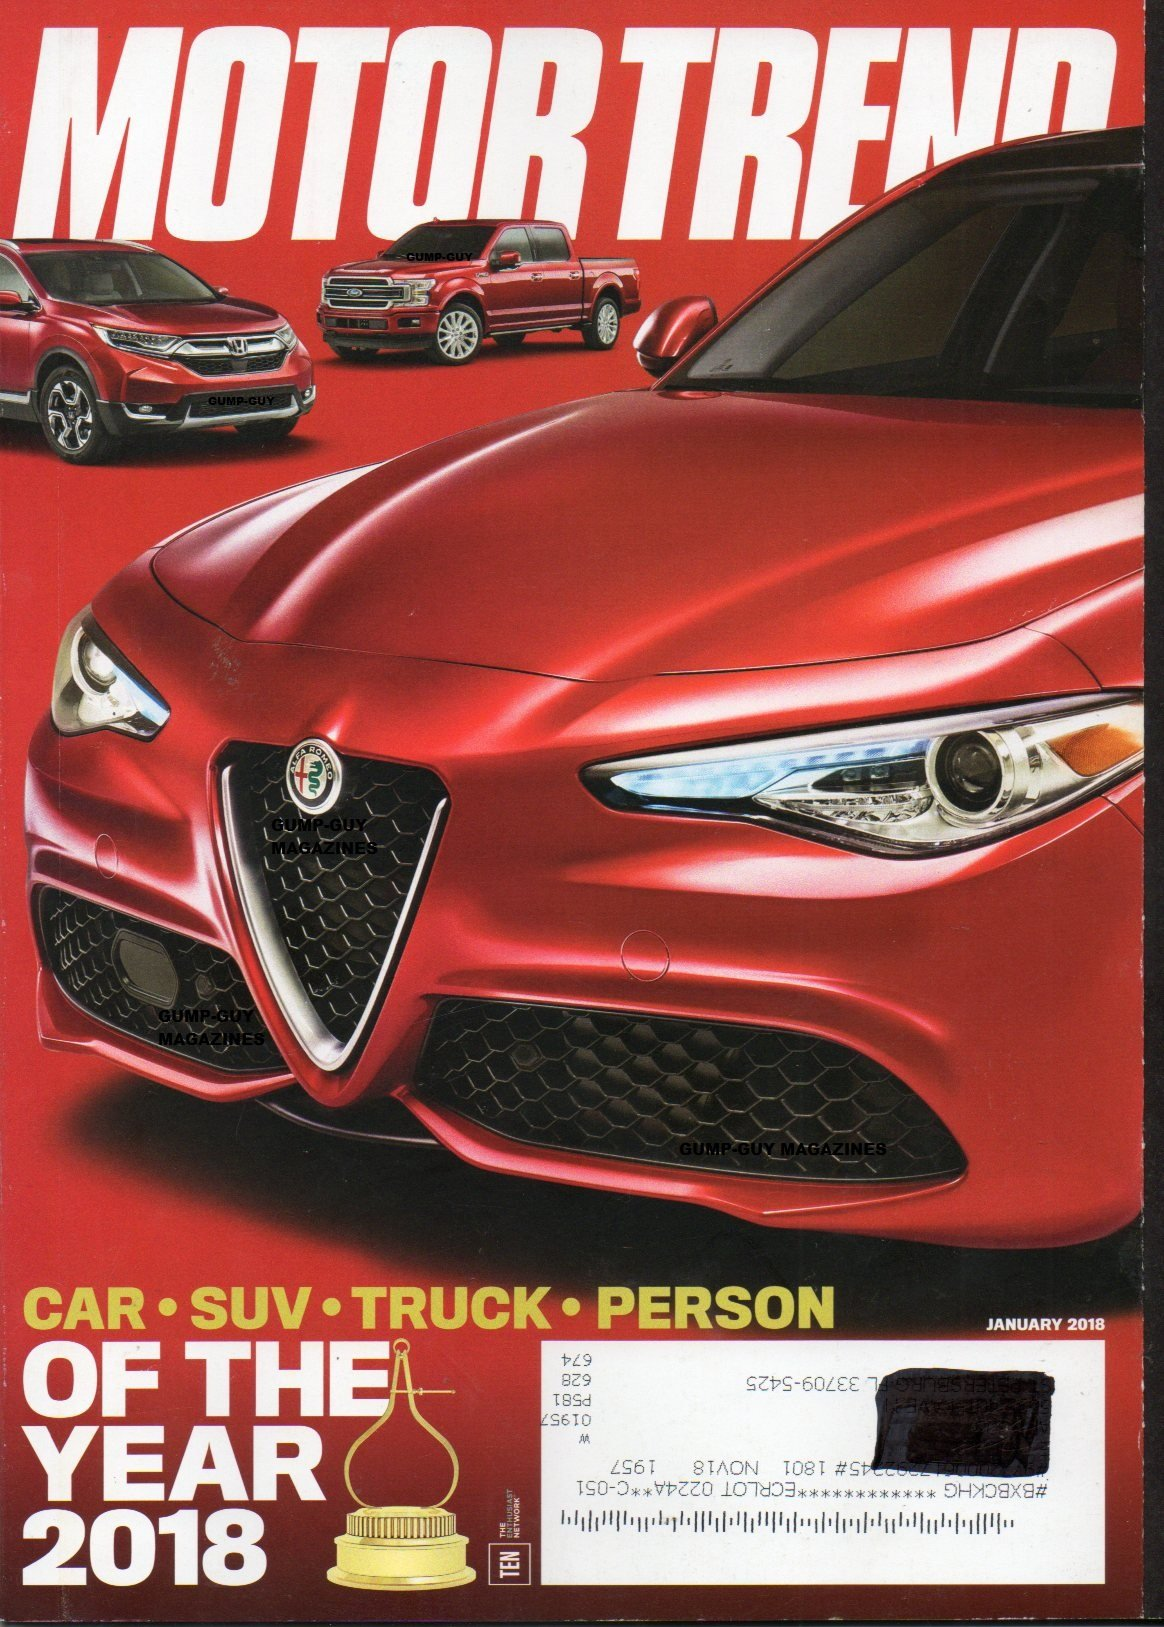 ALL-NEW 2018 CHEVROLET TRAVERSE Tesla Model 3 Long Range MAZDA VISION COUPE & KAI CONCEPTS OF MOTOR TREND MAGAZINE Audi Q5 BMW X4 Buick Enclave Avenir CAR SUV TRUCK & PERSON OF THE YEAR pdf epub